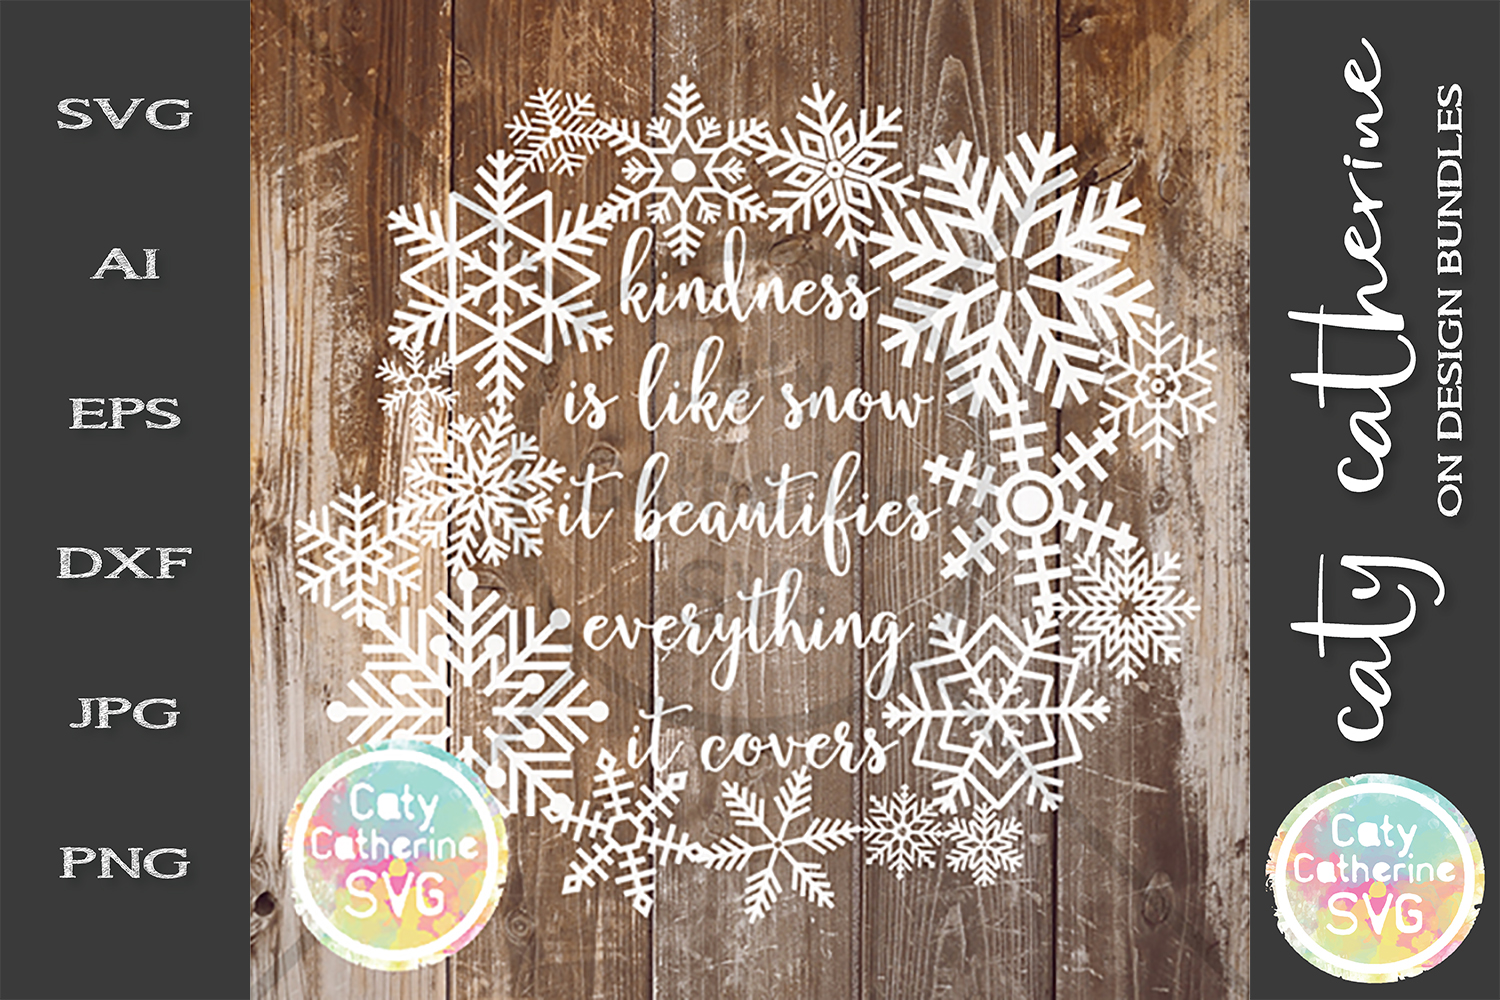 Kindness Is Like Snow It Beautifies Everything It Covers SVG example image 1